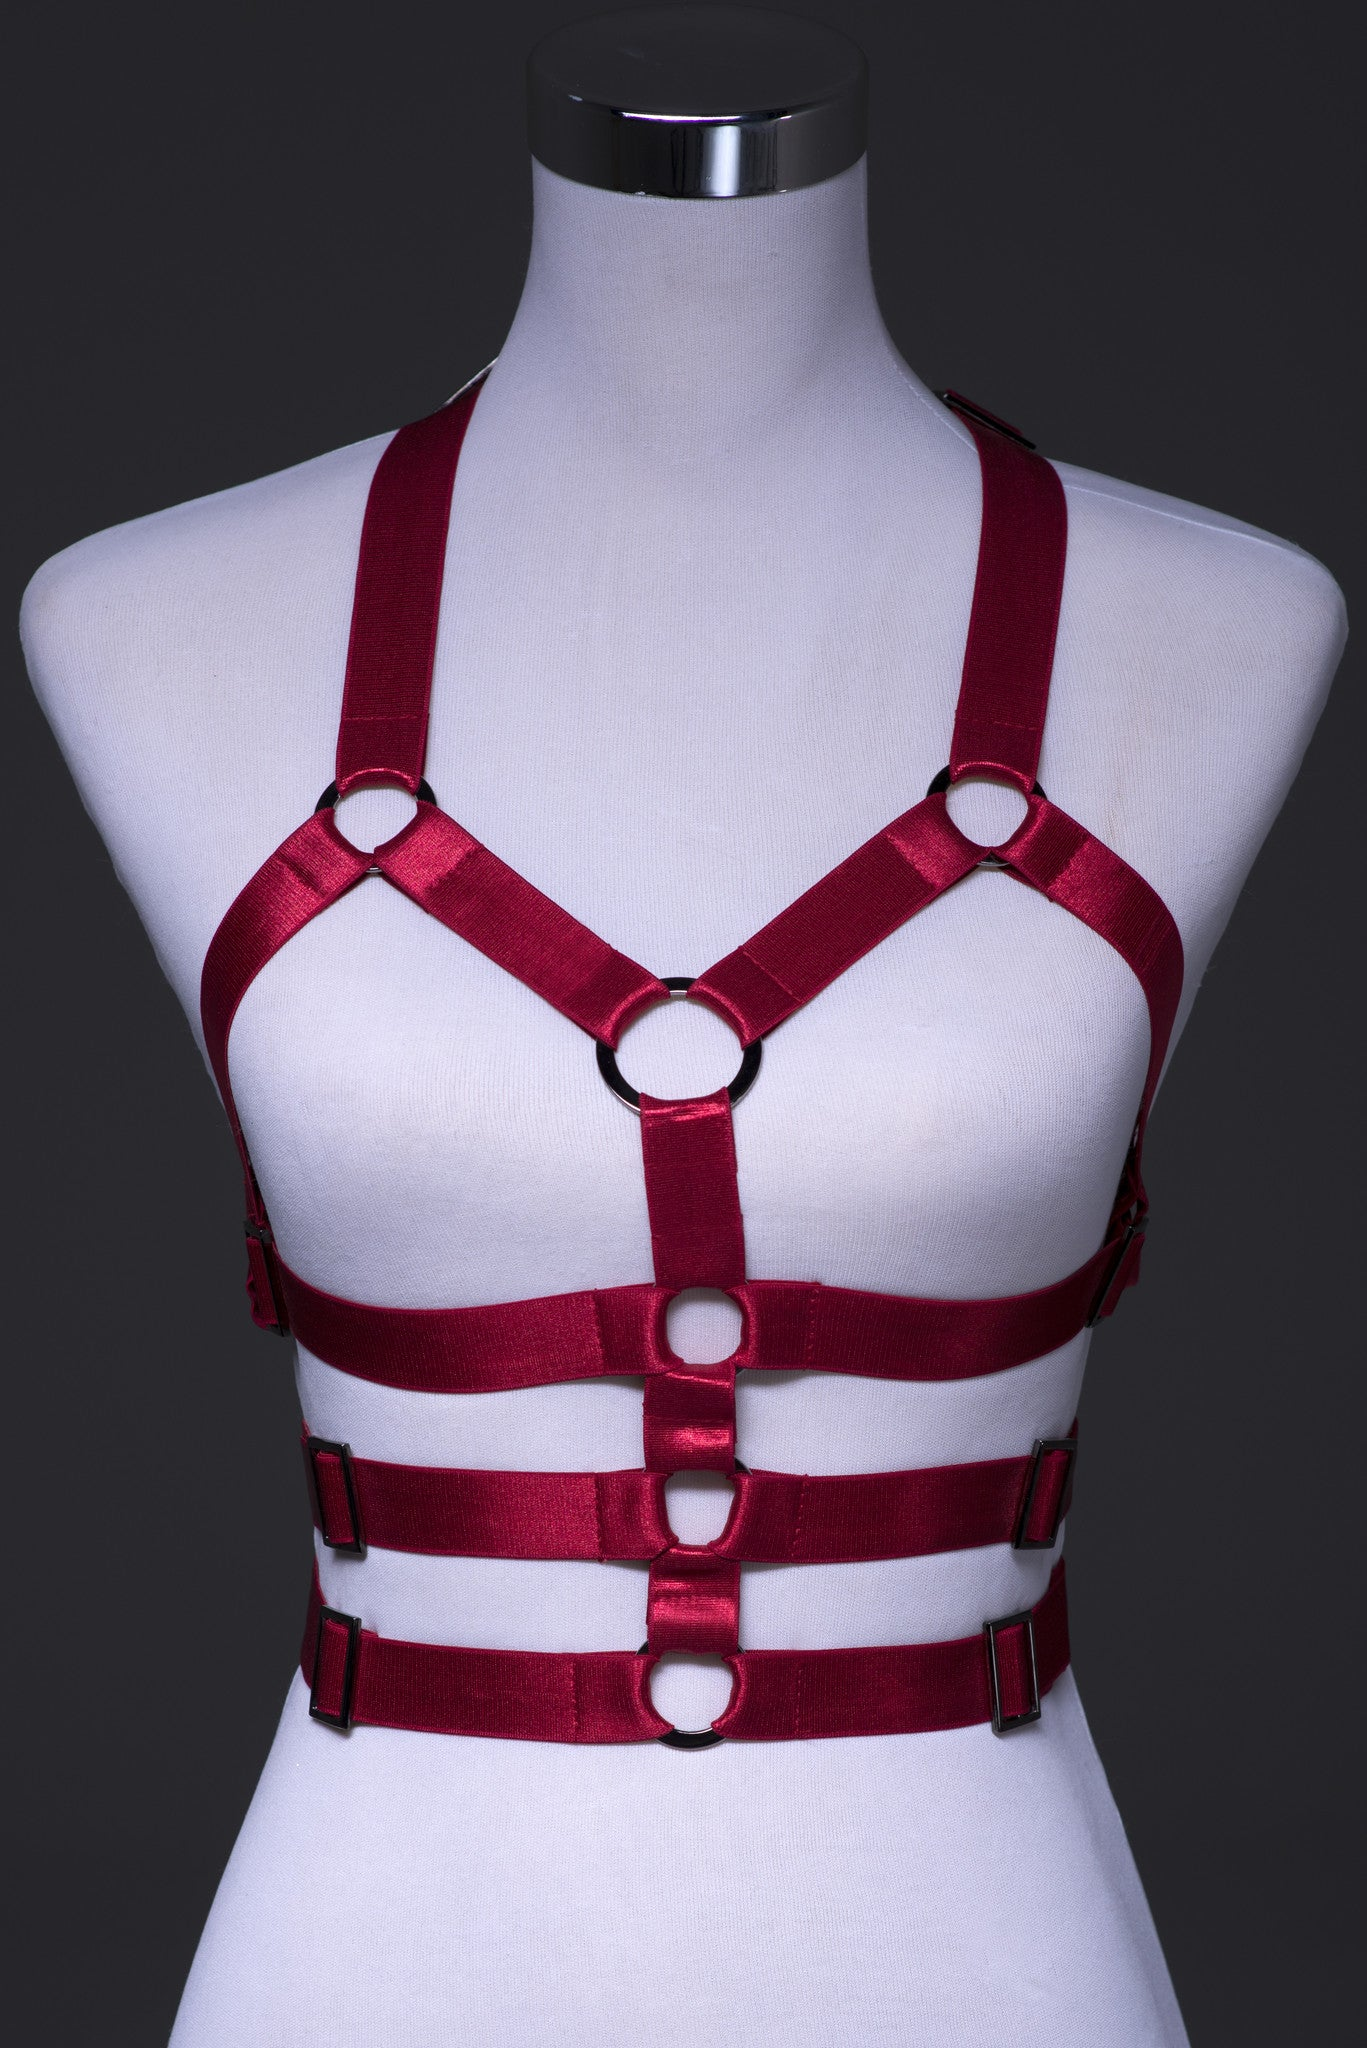 "*LIMITED EDITION* 30/30 ""Devils Spine"" Harness"